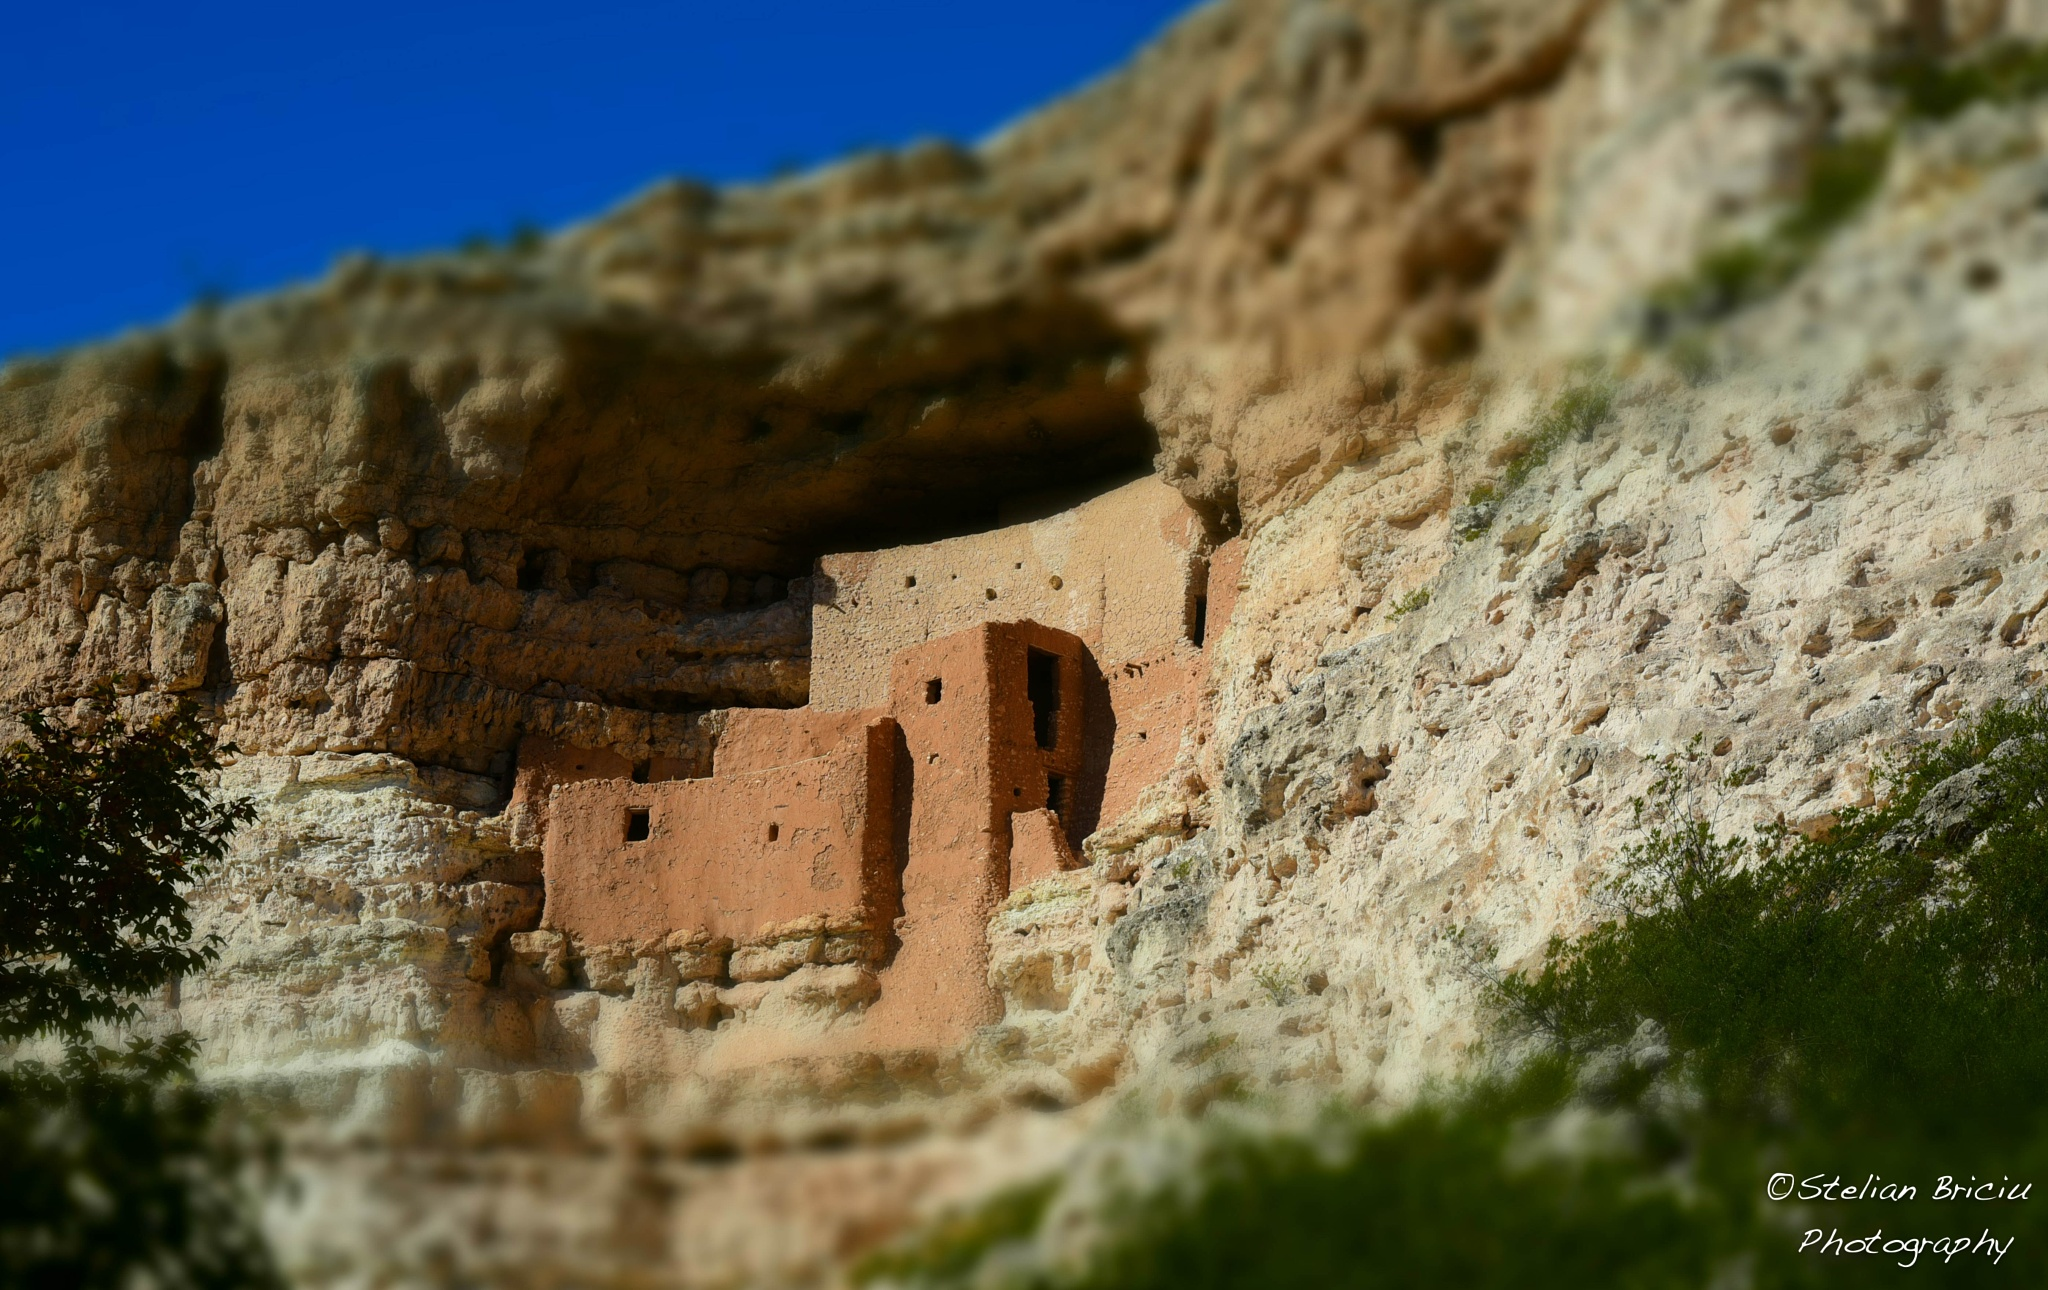 Montezuma Castle by stelianbriciuphotography